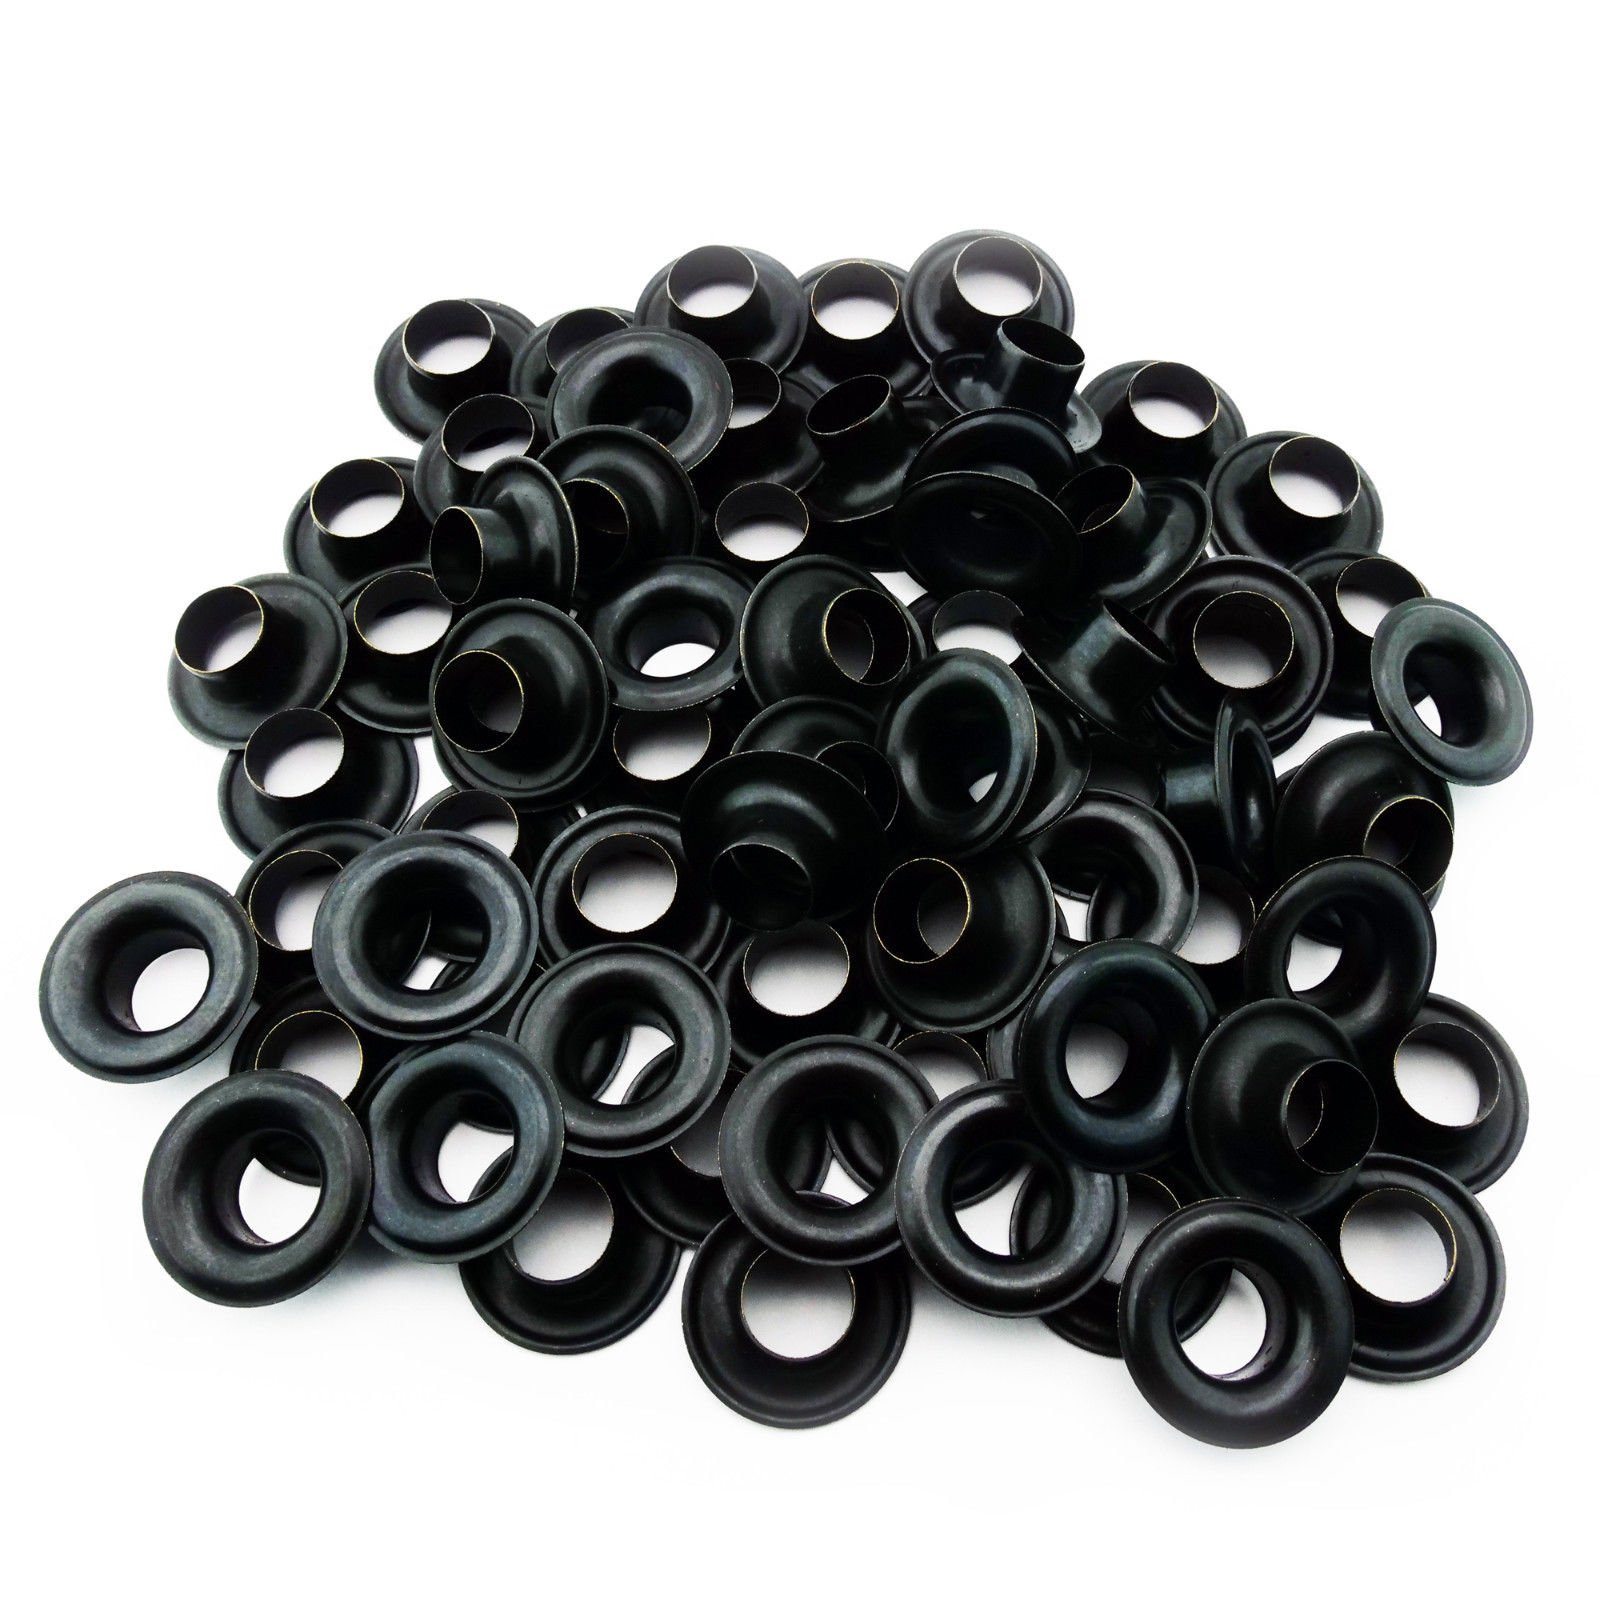 C.S. Osborne Black Grommets & Washers #B1-0 Size 0 (1/4 Hole) 144 Sets